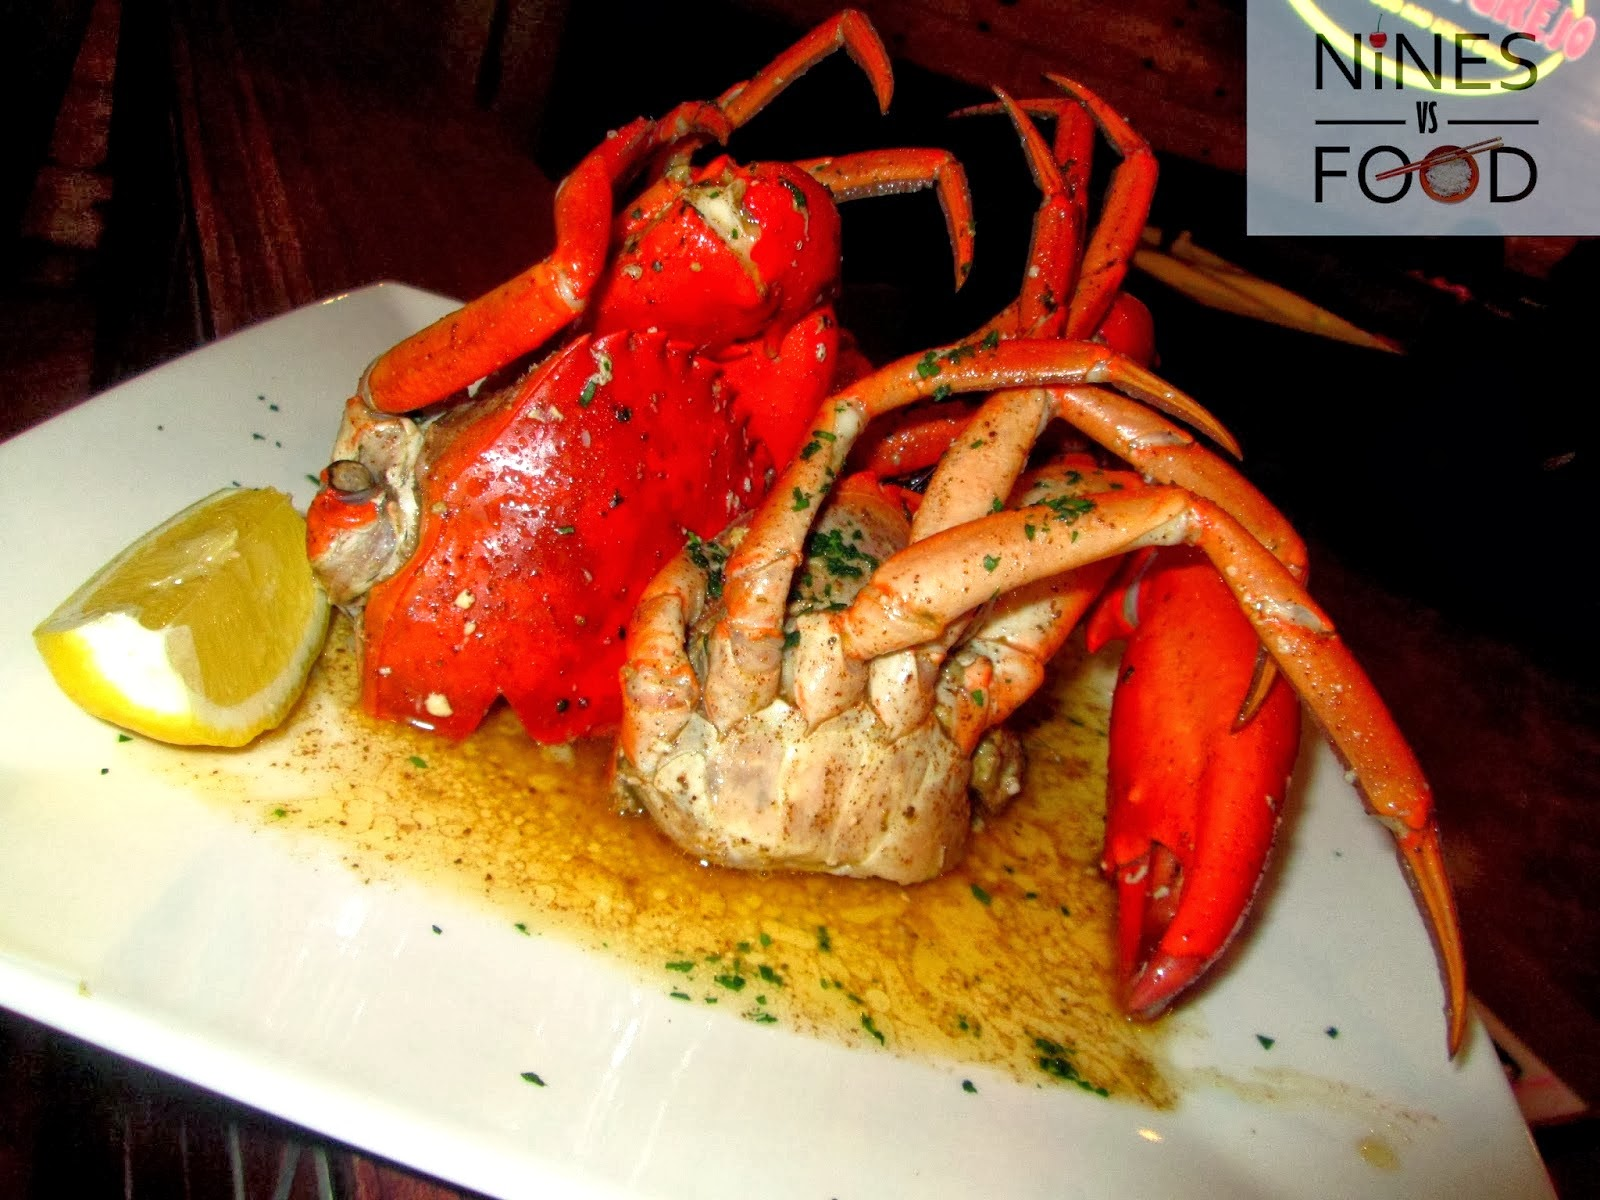 Nines vs. Food - El Cangrejo Crab Seafood and Steak Bistro-13.jpg